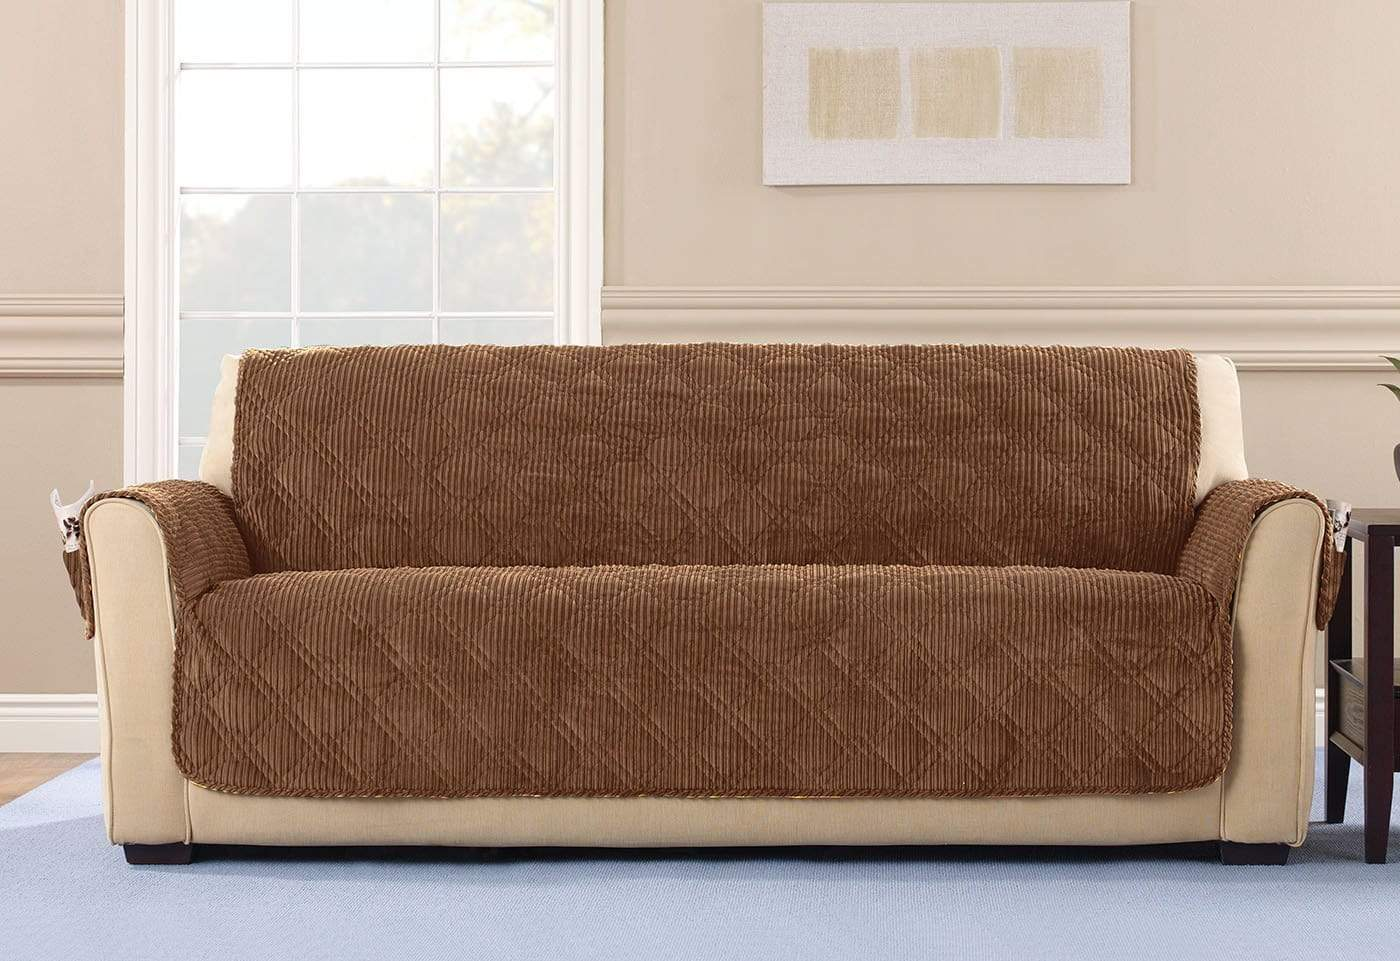 Wide Wale Corduroy Sofa Furniture Cover Pet Furniture Cover Machine Washable - Sofa / Brown